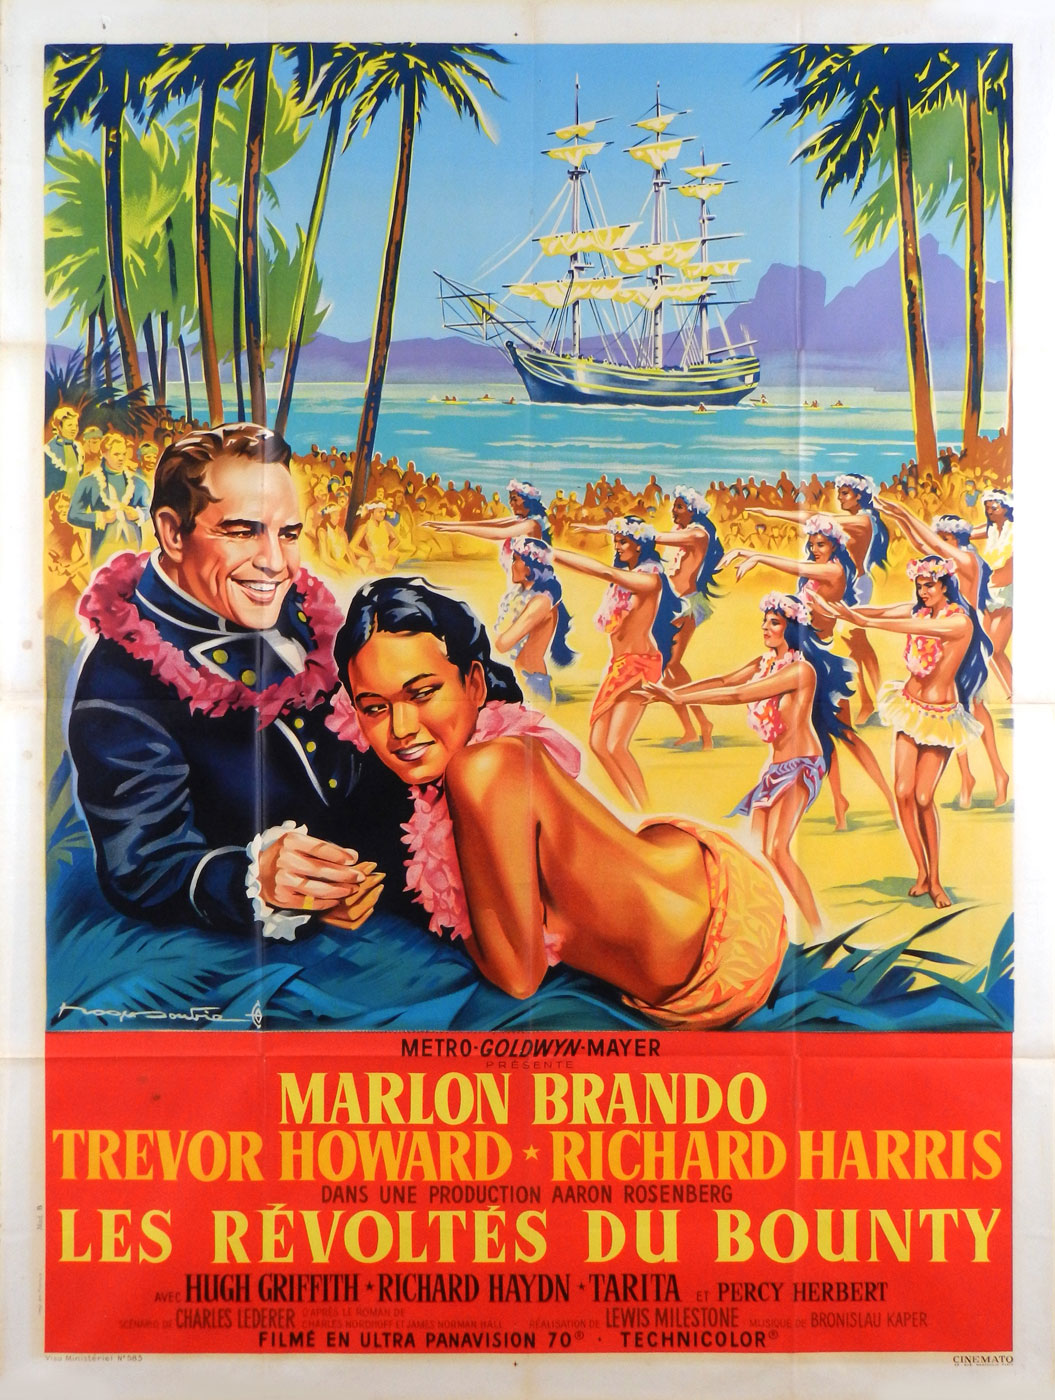 Mutiny On The Bounty by Lewis Milestone (47 x 63 in)